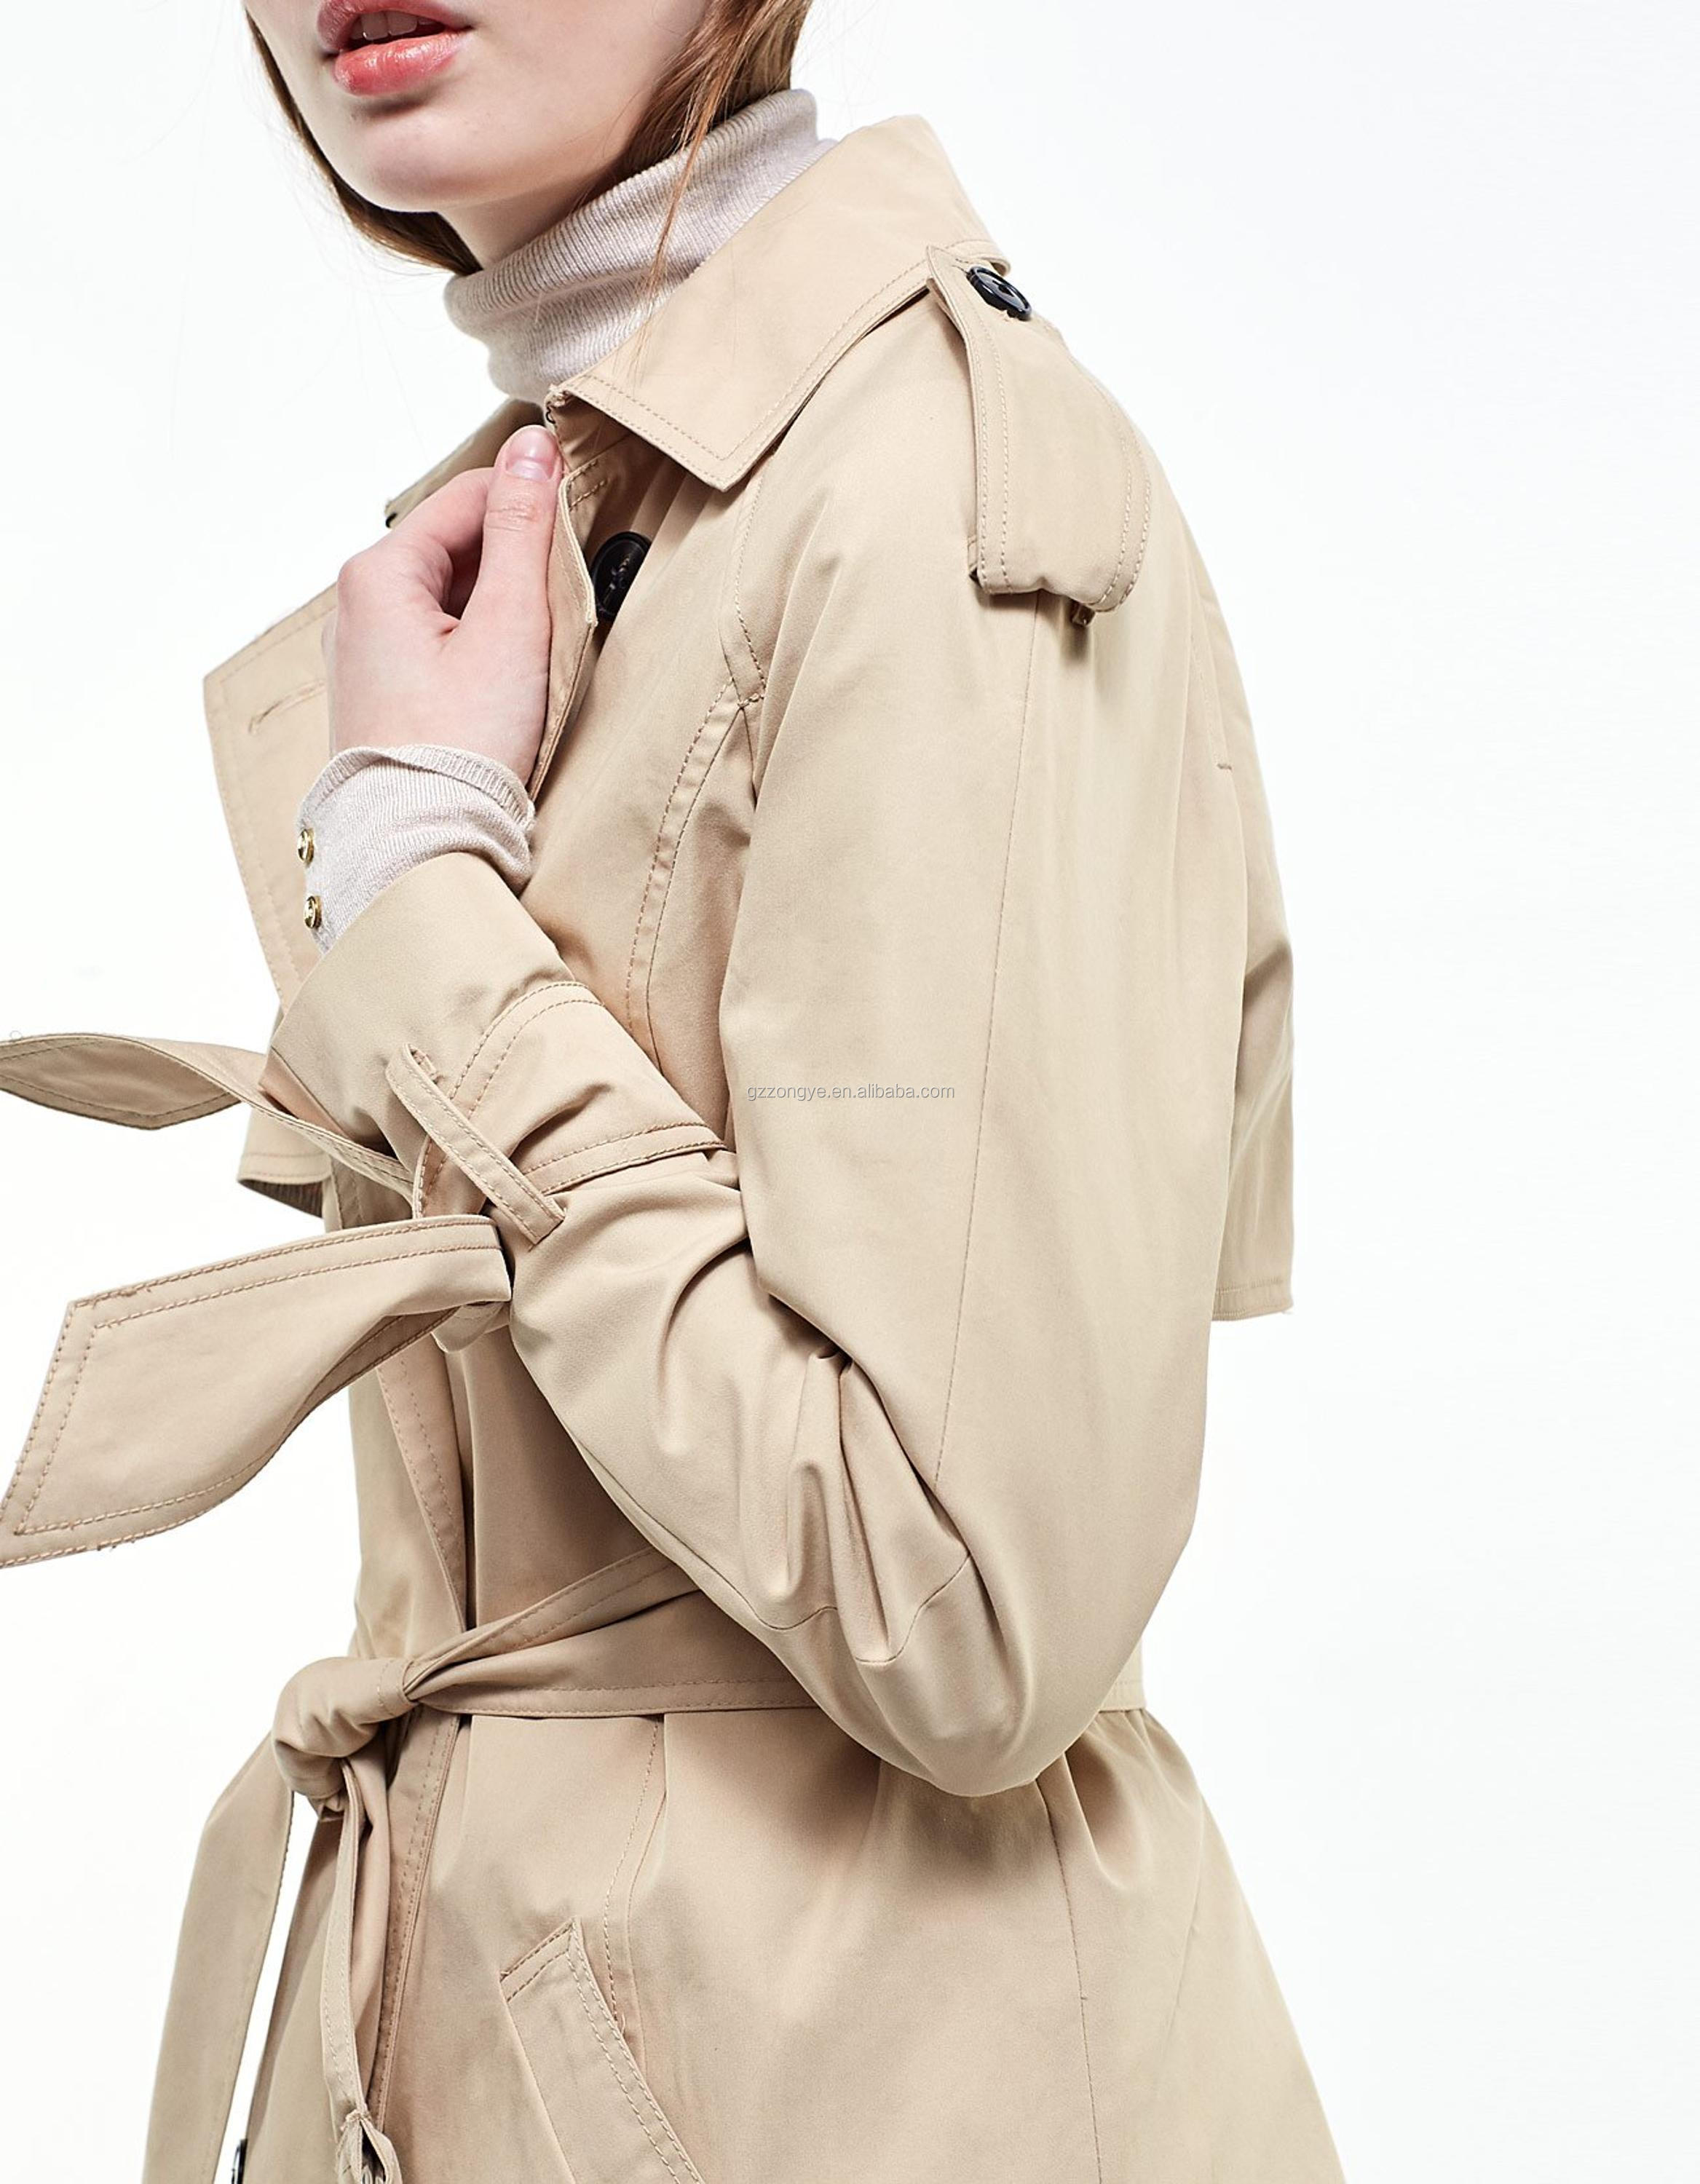 European loose-fitting beige coat with a long style trench woman winter coat China garment manufacture